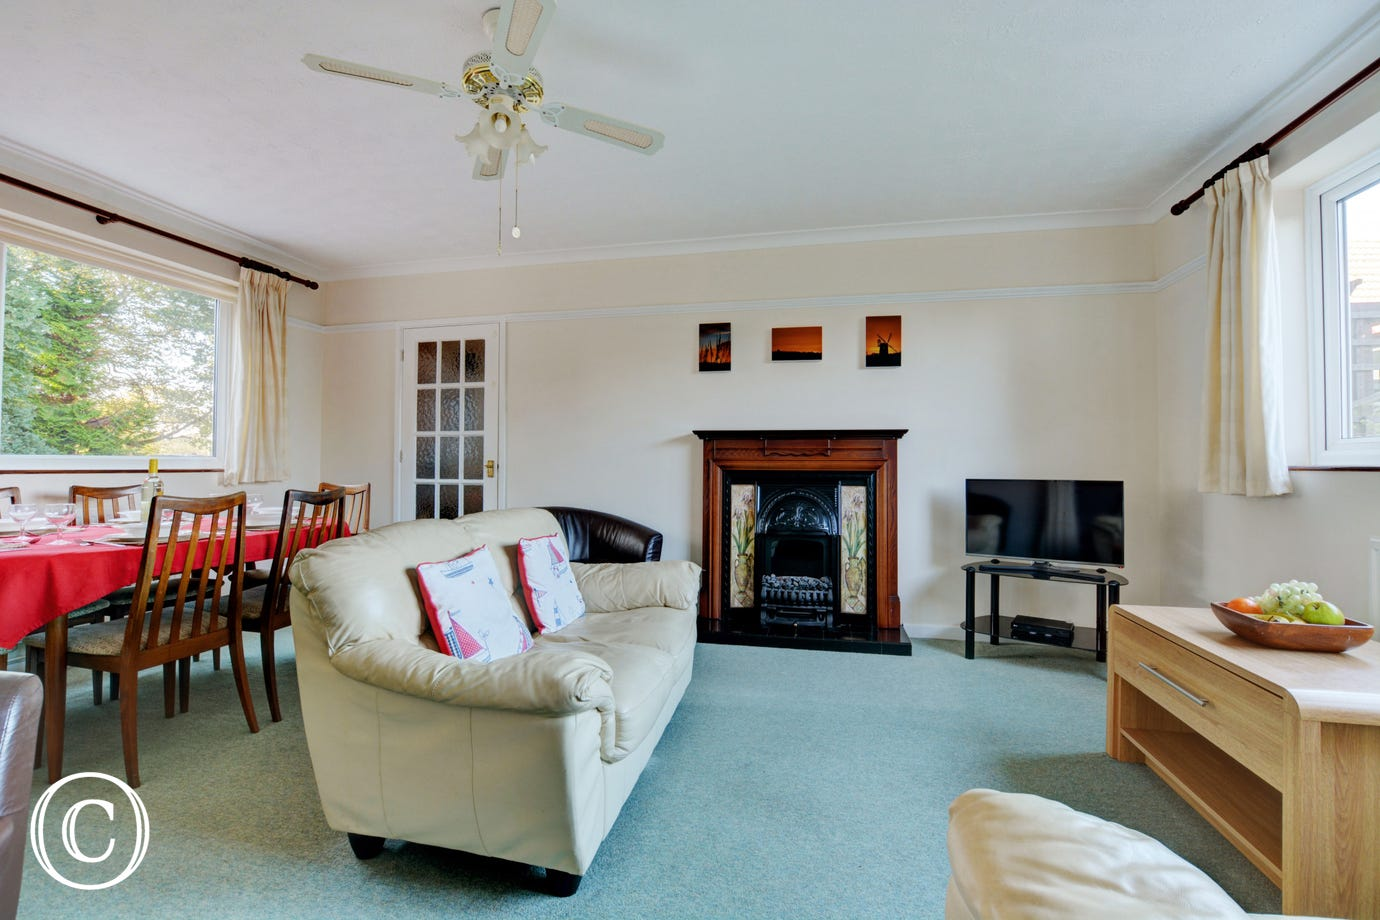 Light and spacious sitting room with an electric living flame fire for cosy evenings